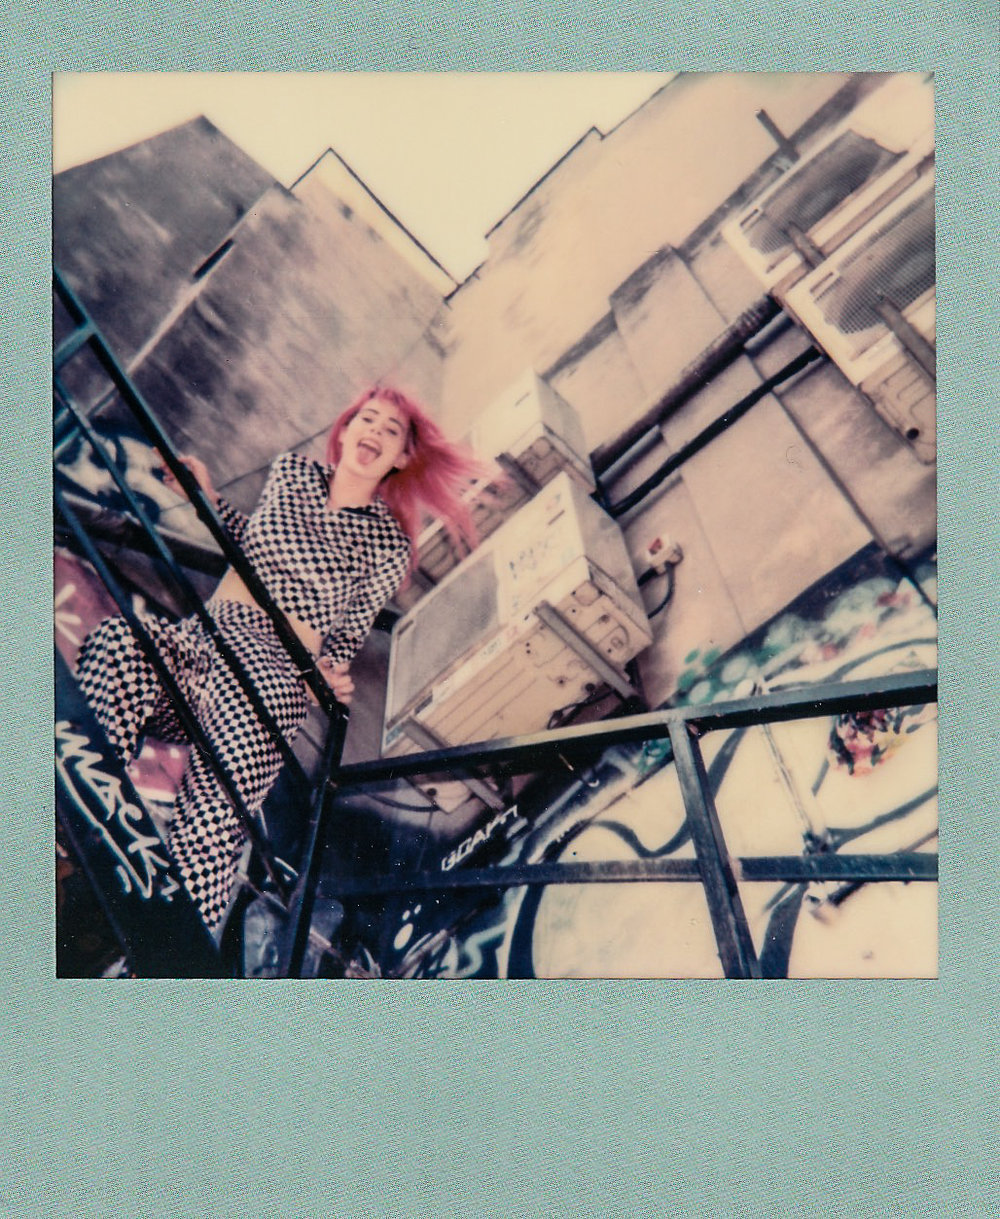 Girli Polaroid Finals - The Old Blue Last - 26.07.2018 -  Ant Adams-1.jpg